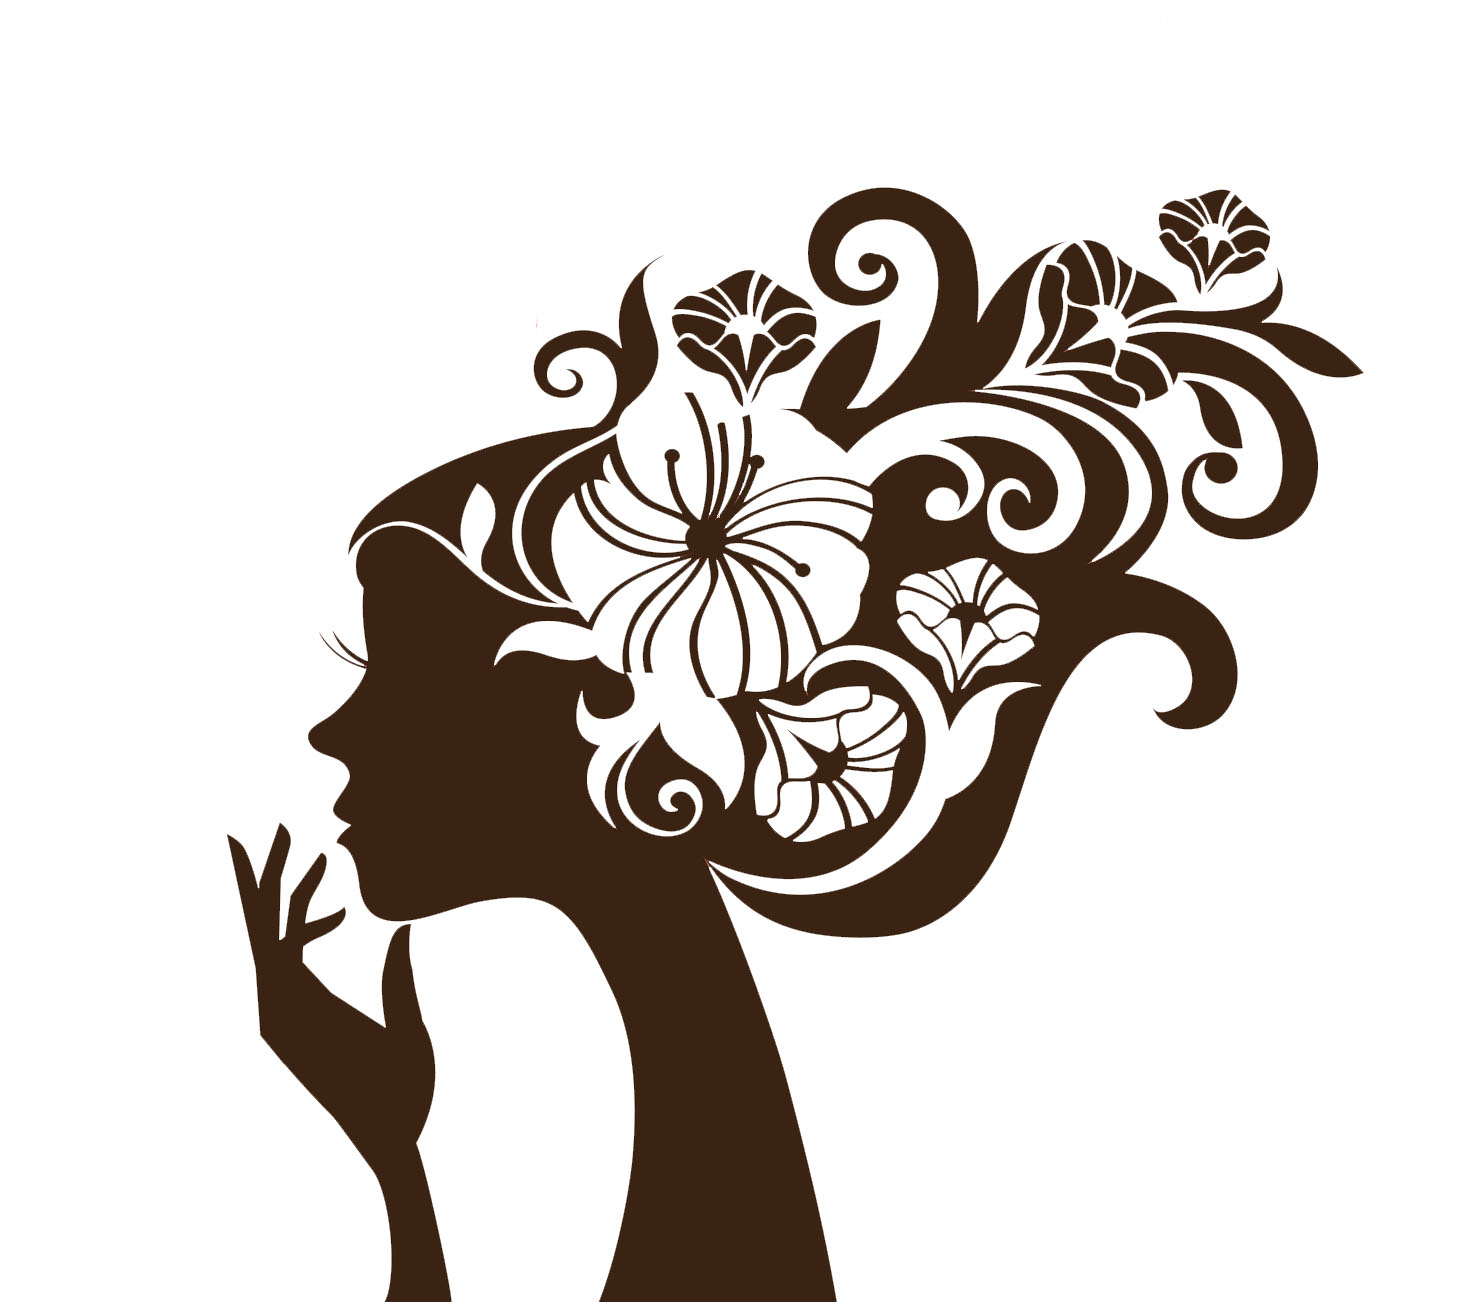 Butterfly Girl Hd Wallpaper Beautiful Woman Silhouette With A Flowers Hd Wallpapers